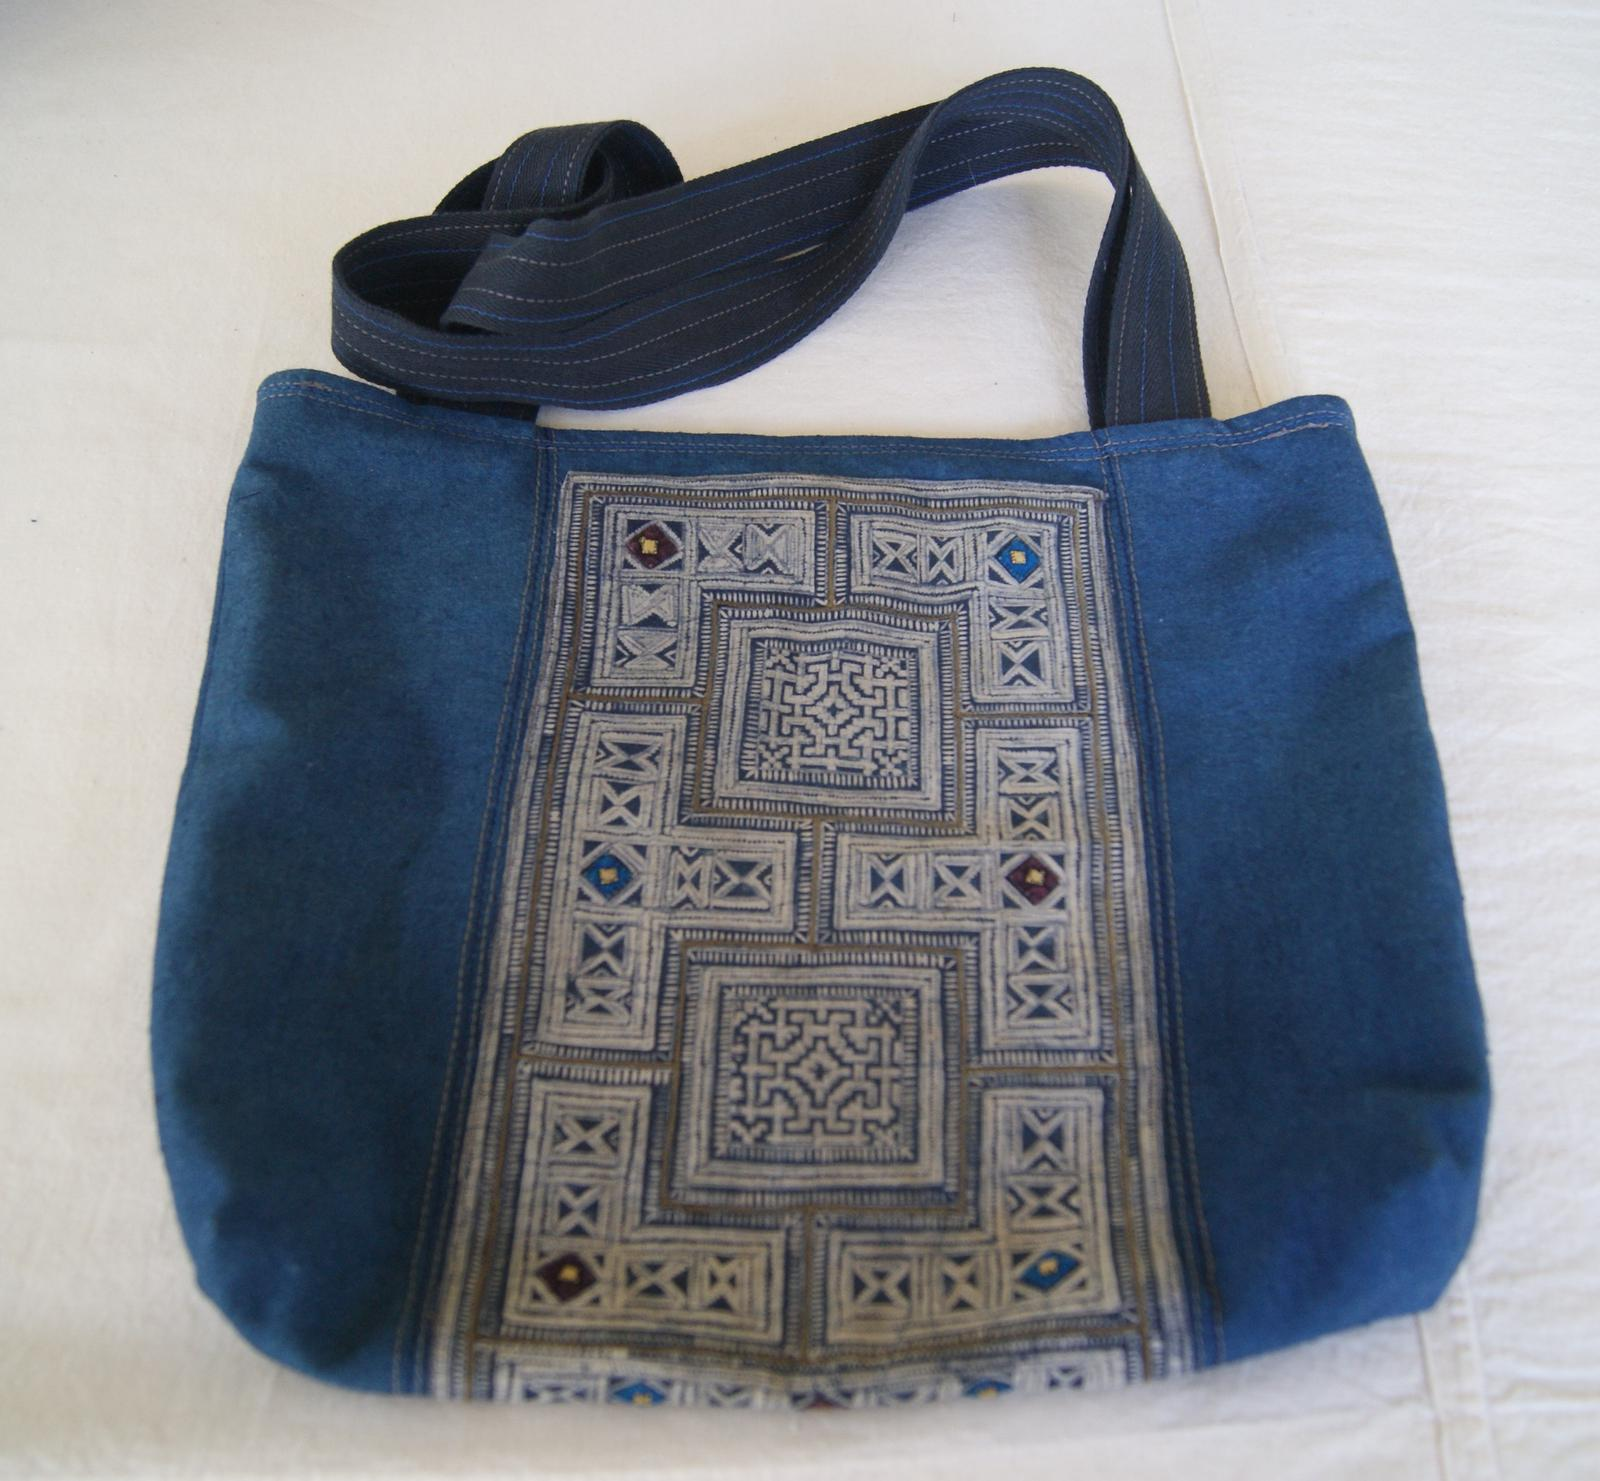 Medium indigo bag with ethnic fabric and stitching